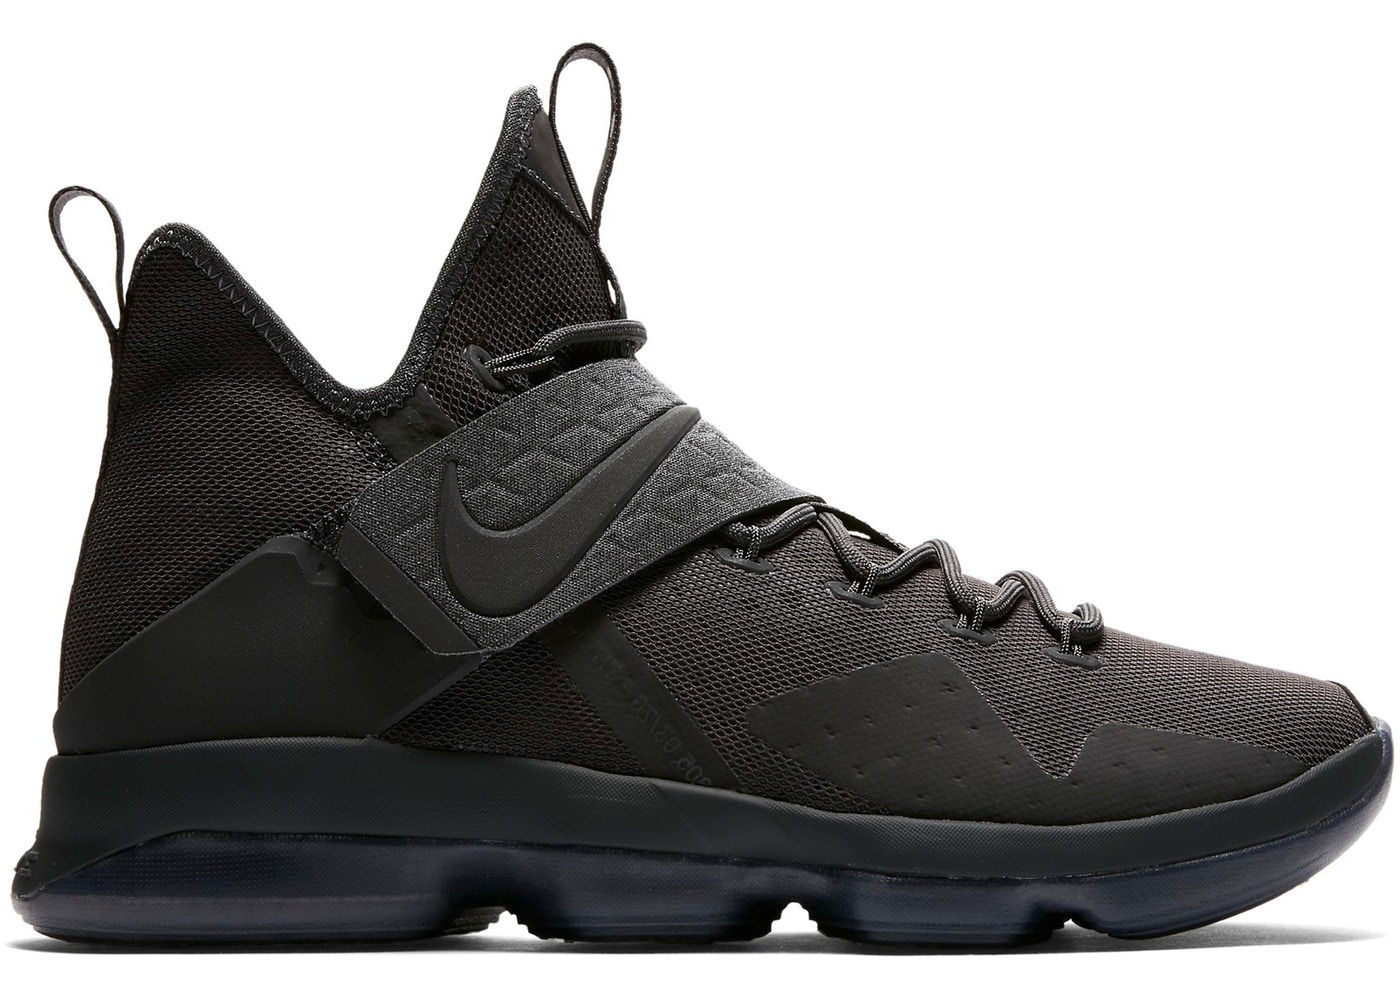 75469680b78 LeBron 14 Zero Dark Thirty 23 - 852402-002